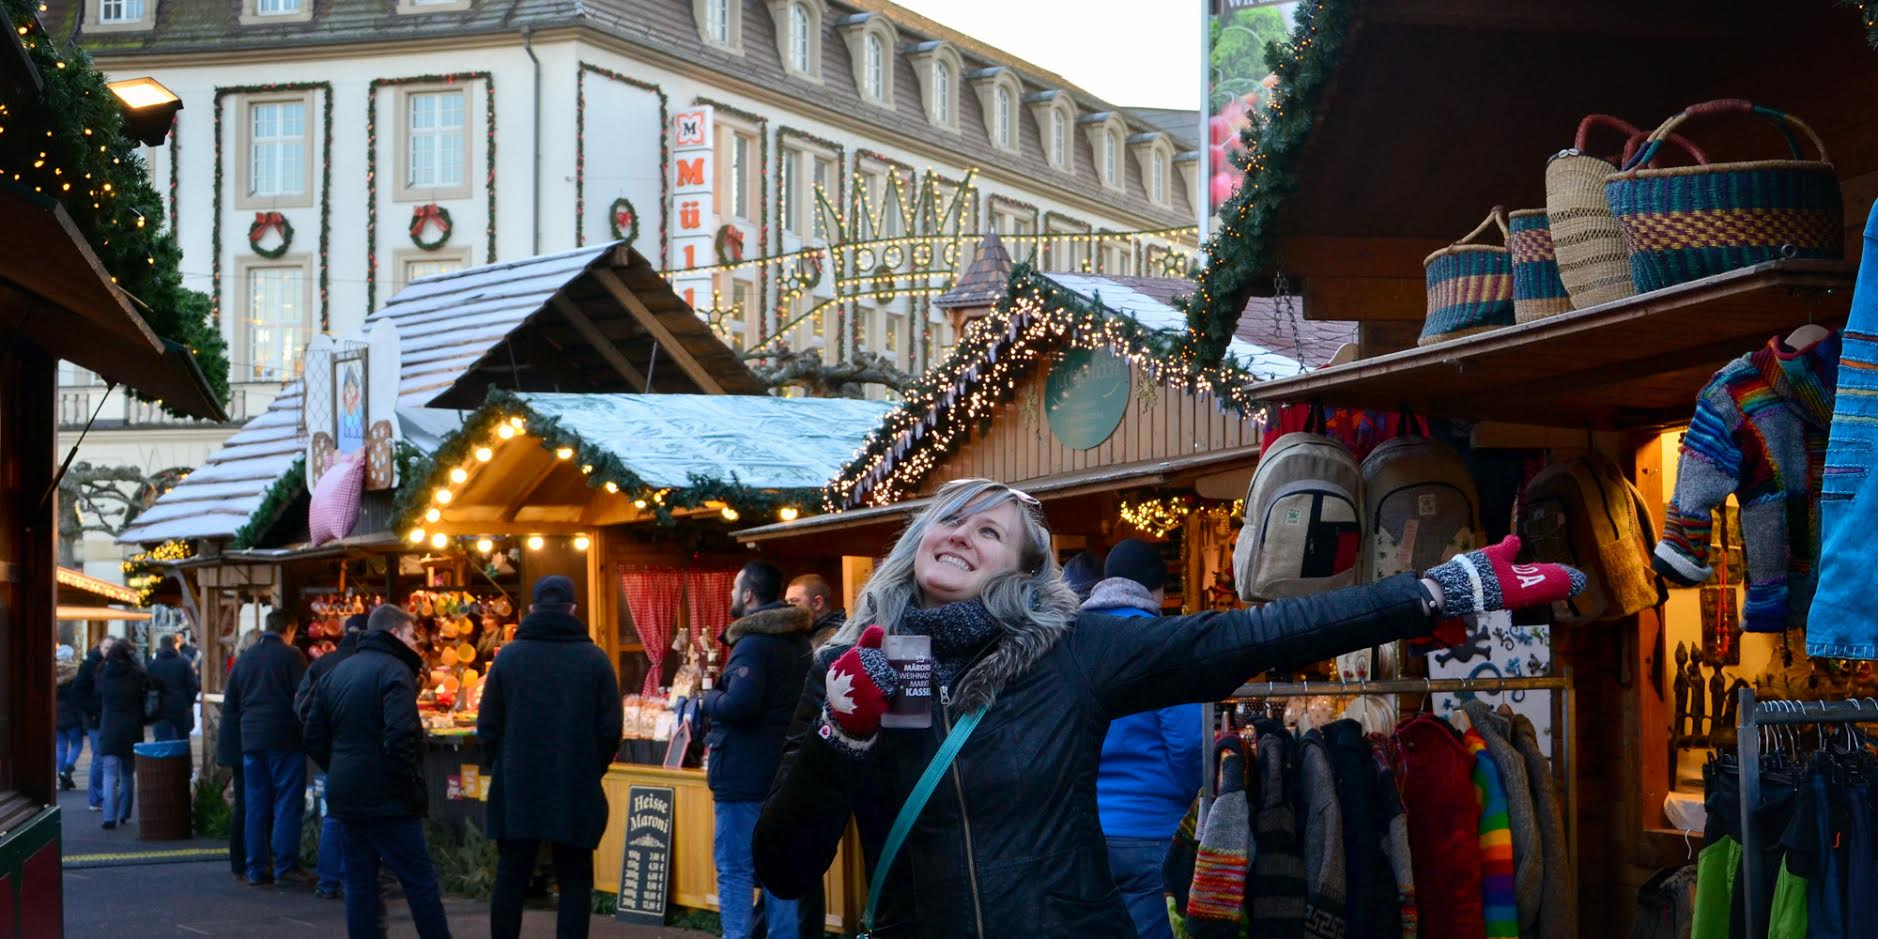 The Kassel Christmas Market, Germany is one the most popular Christmas markets in Europe. Check out this article and discover the best Christmas Markets in Europe. #christmas #christmasholidays #christmastrips #europemarkets #europechristmasmarkets #christmasmarkets